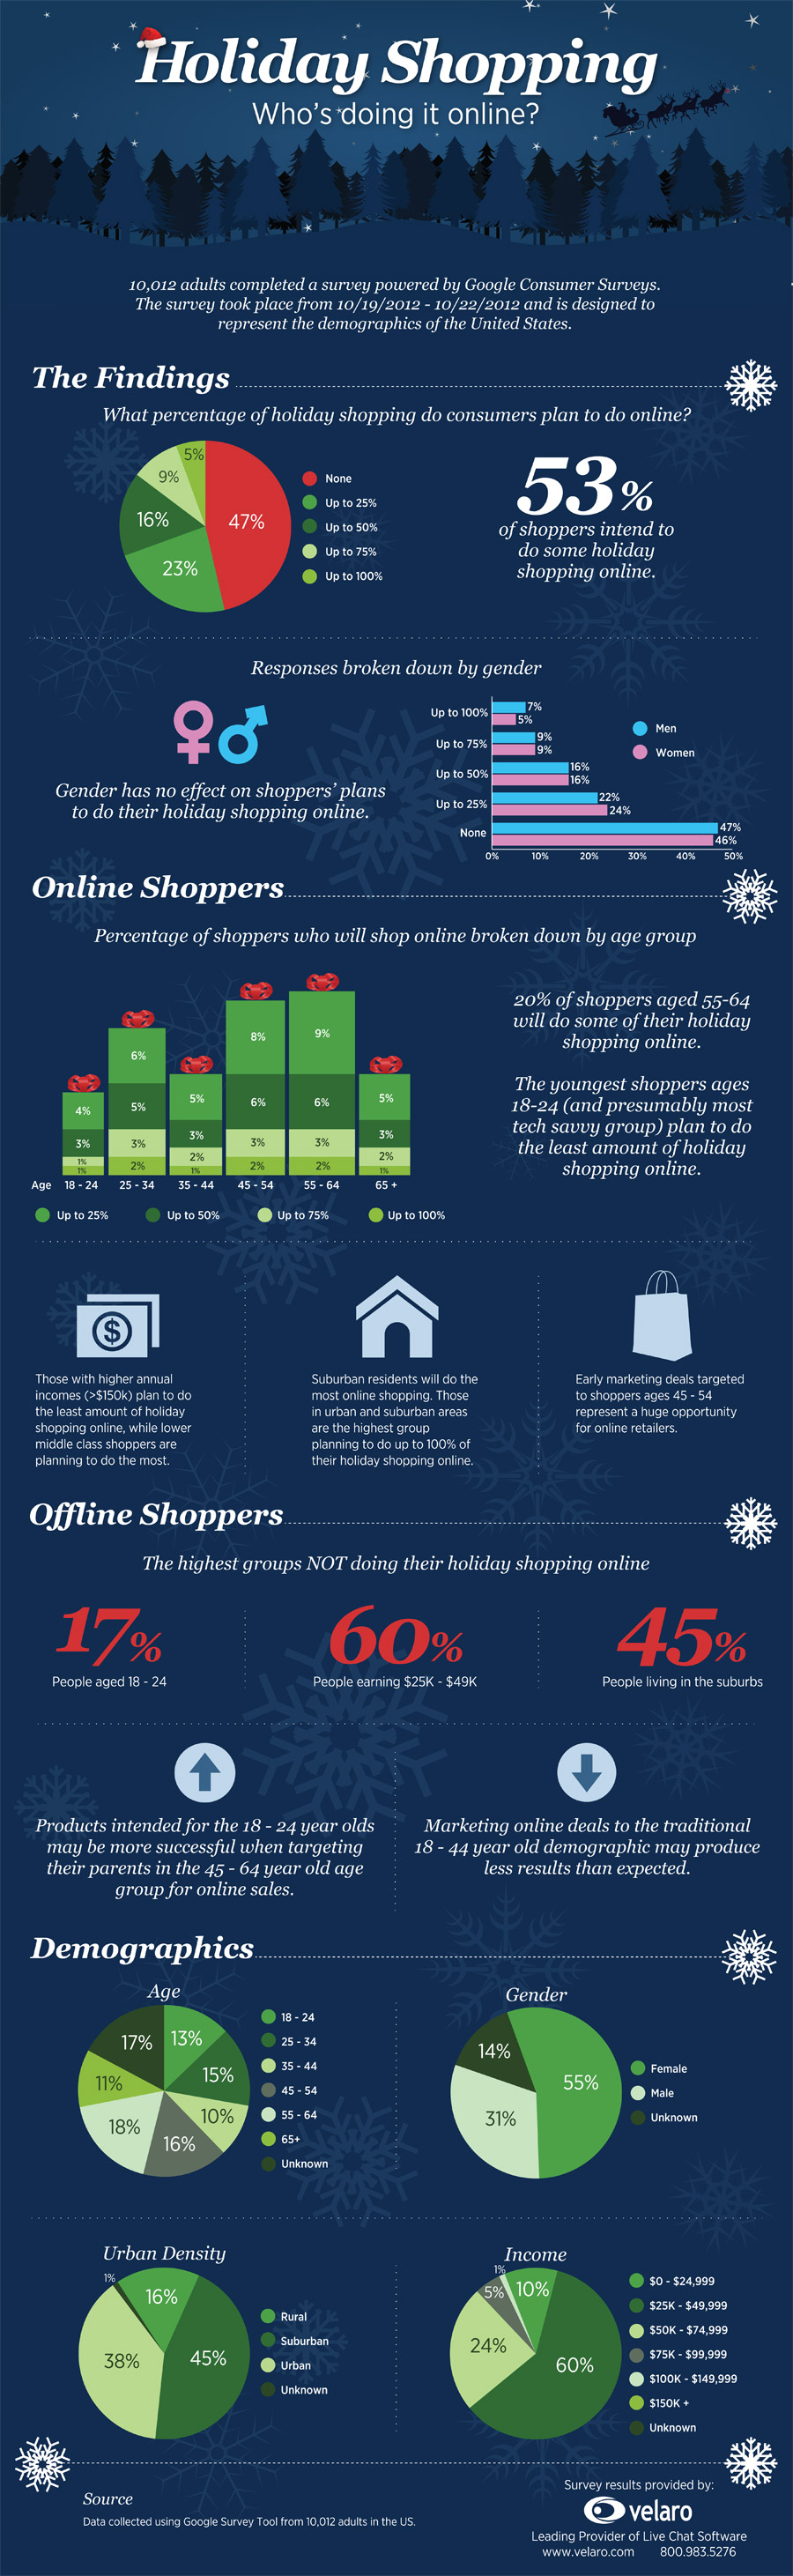 Holiday Shopping Online Trends